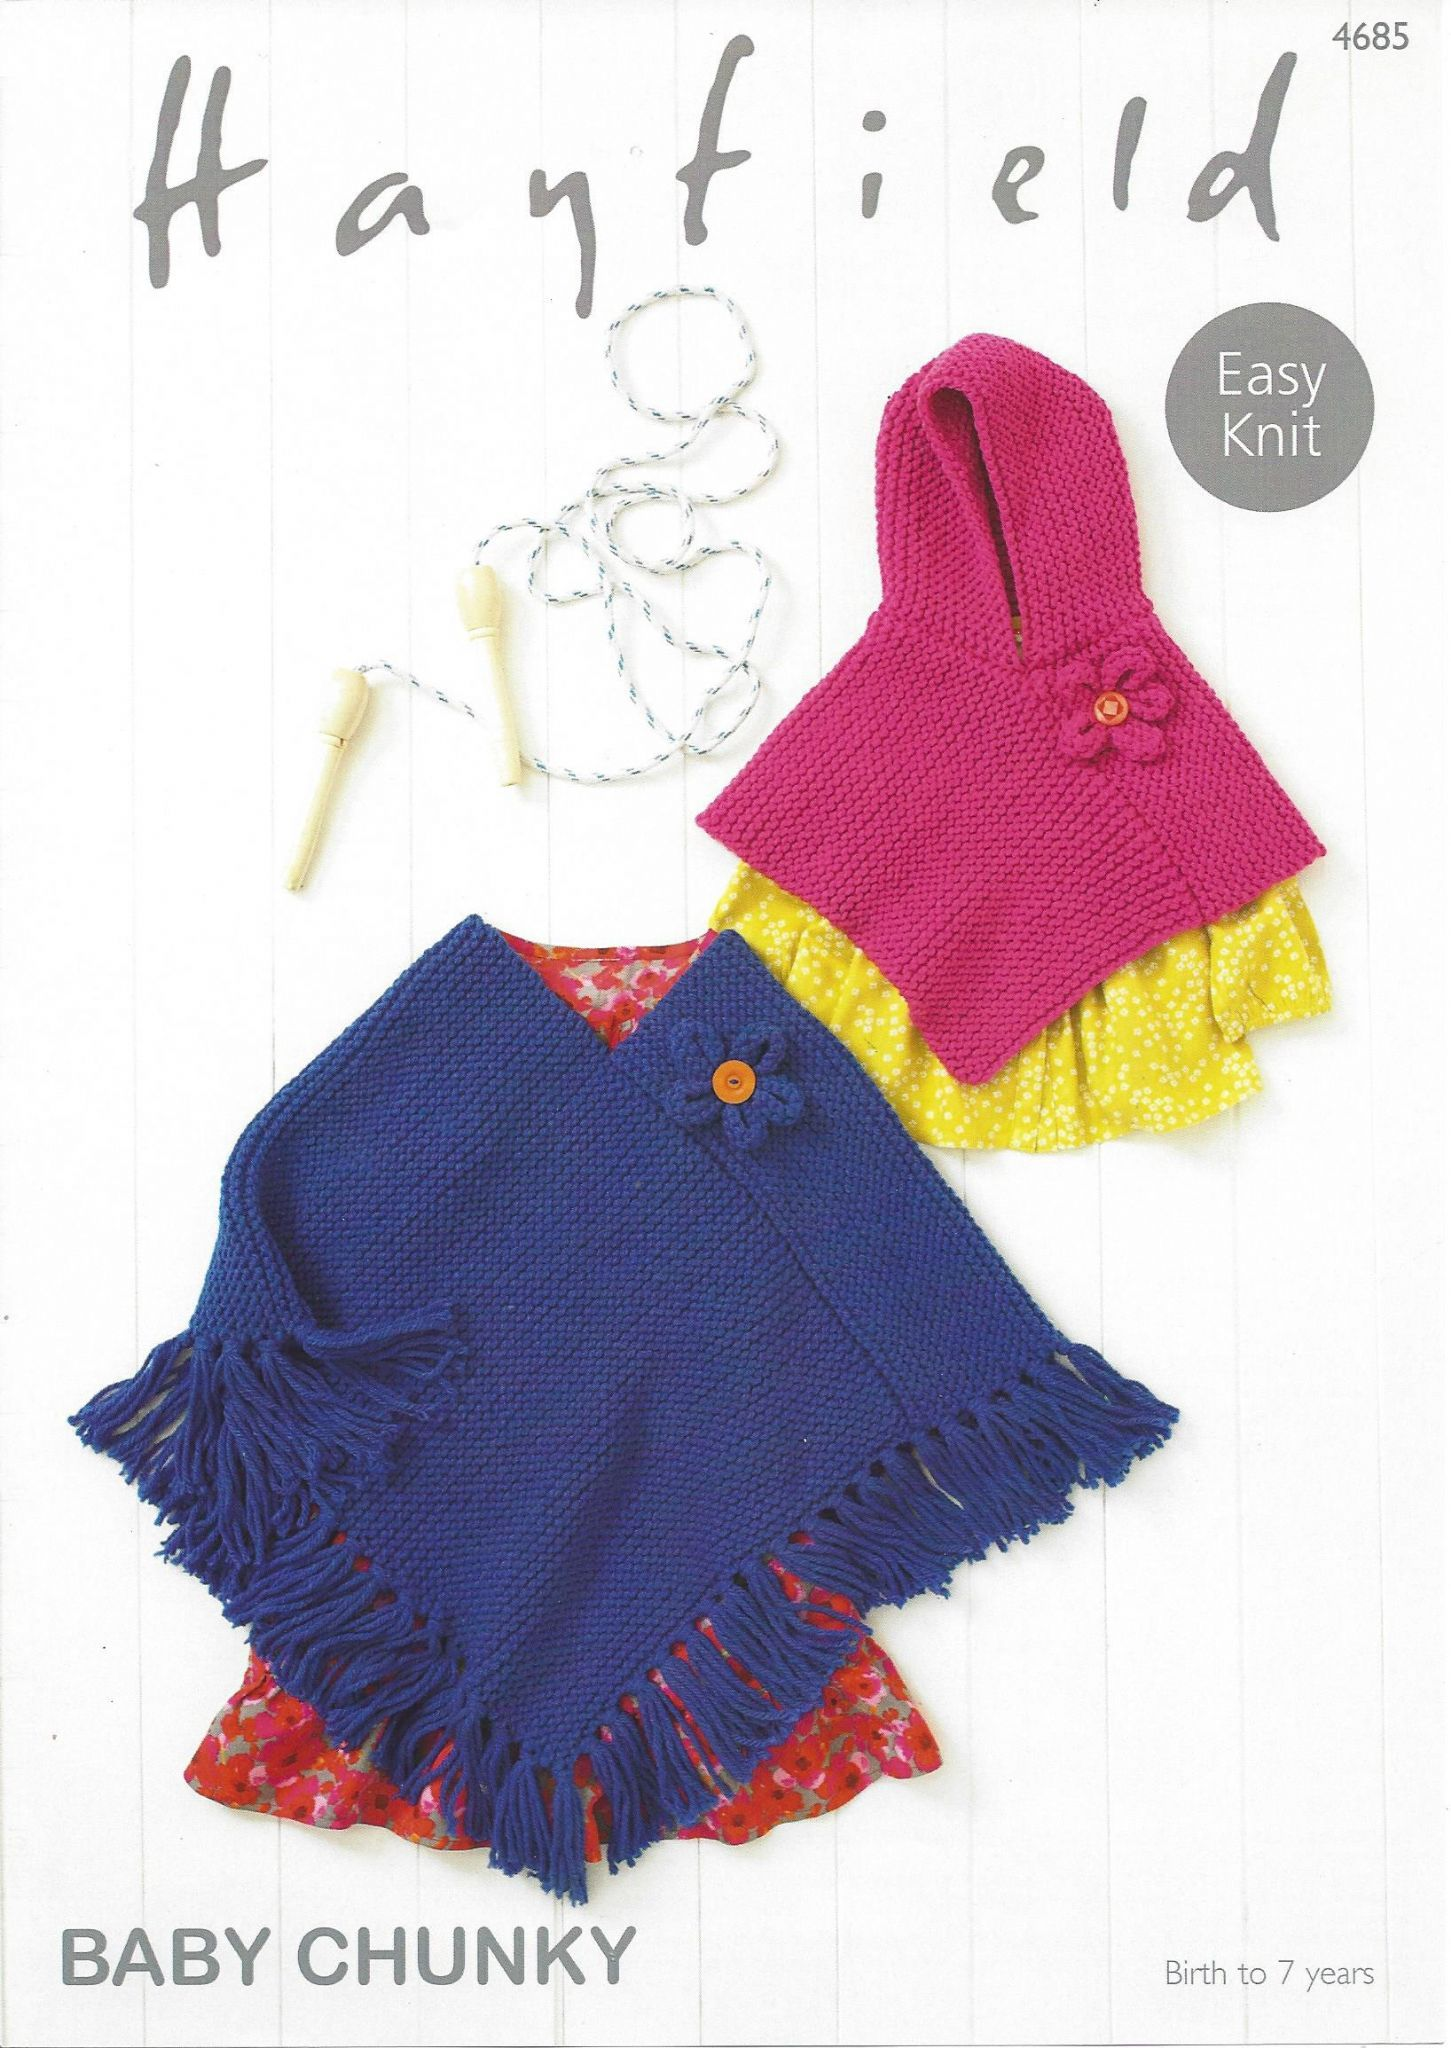 4685 - HAYFIELD BABY CHUNKY EASY KNIT PONCHO KNITTING PATTERN - TO ...